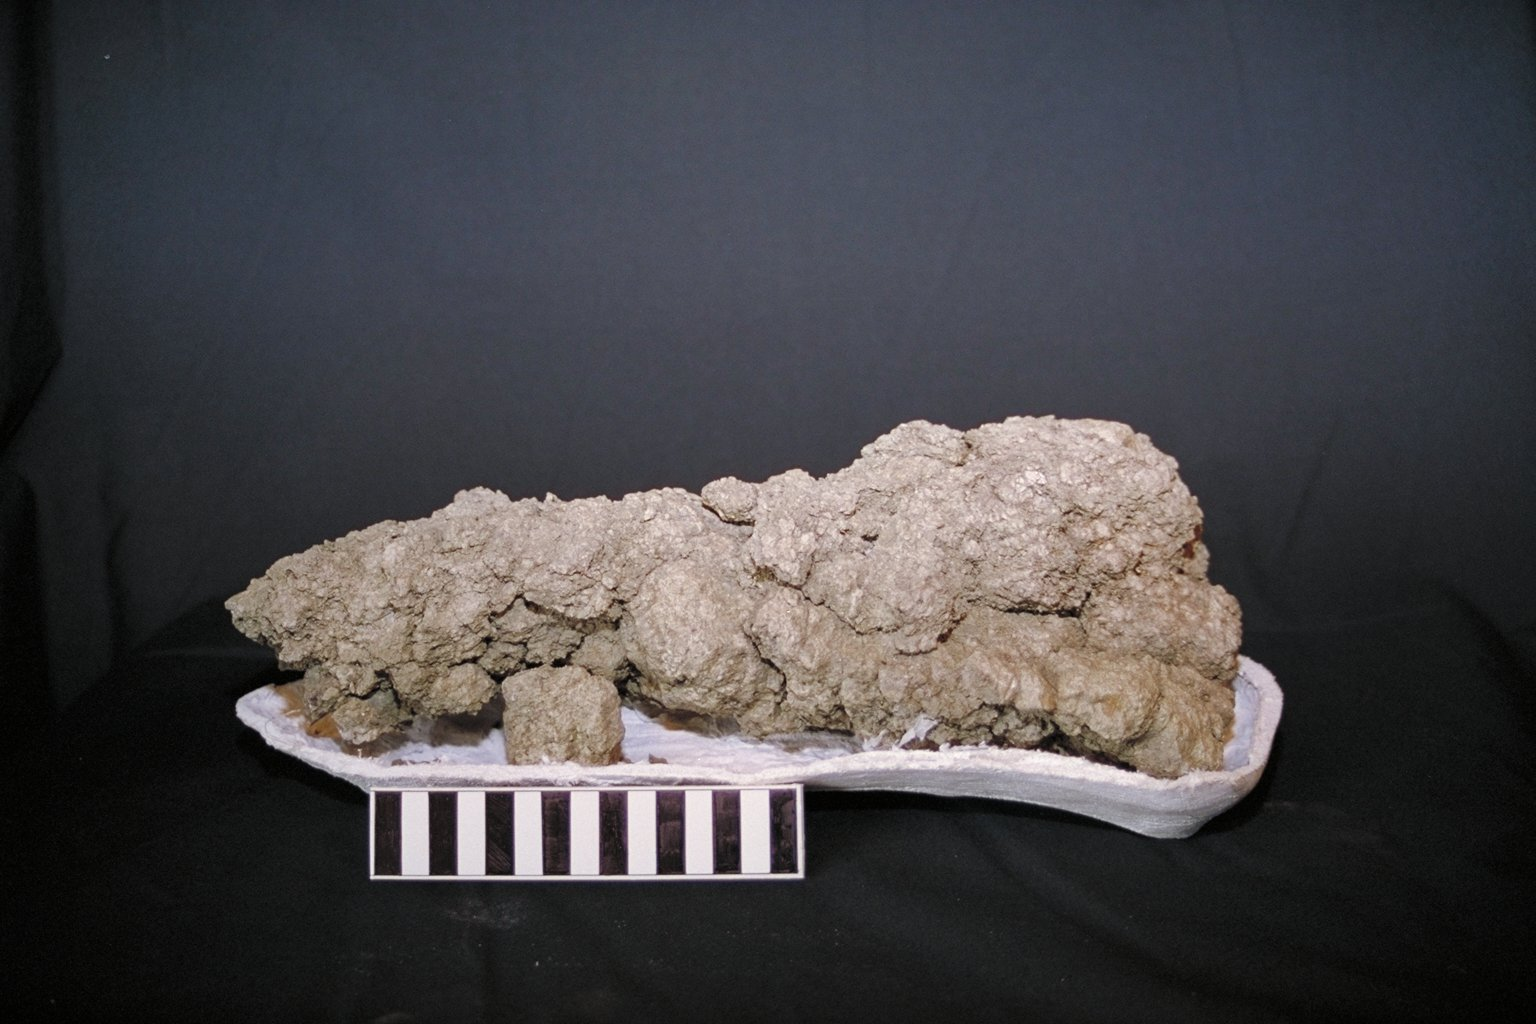 coprolite (fossilized poop) of a meat-eating dinosaur